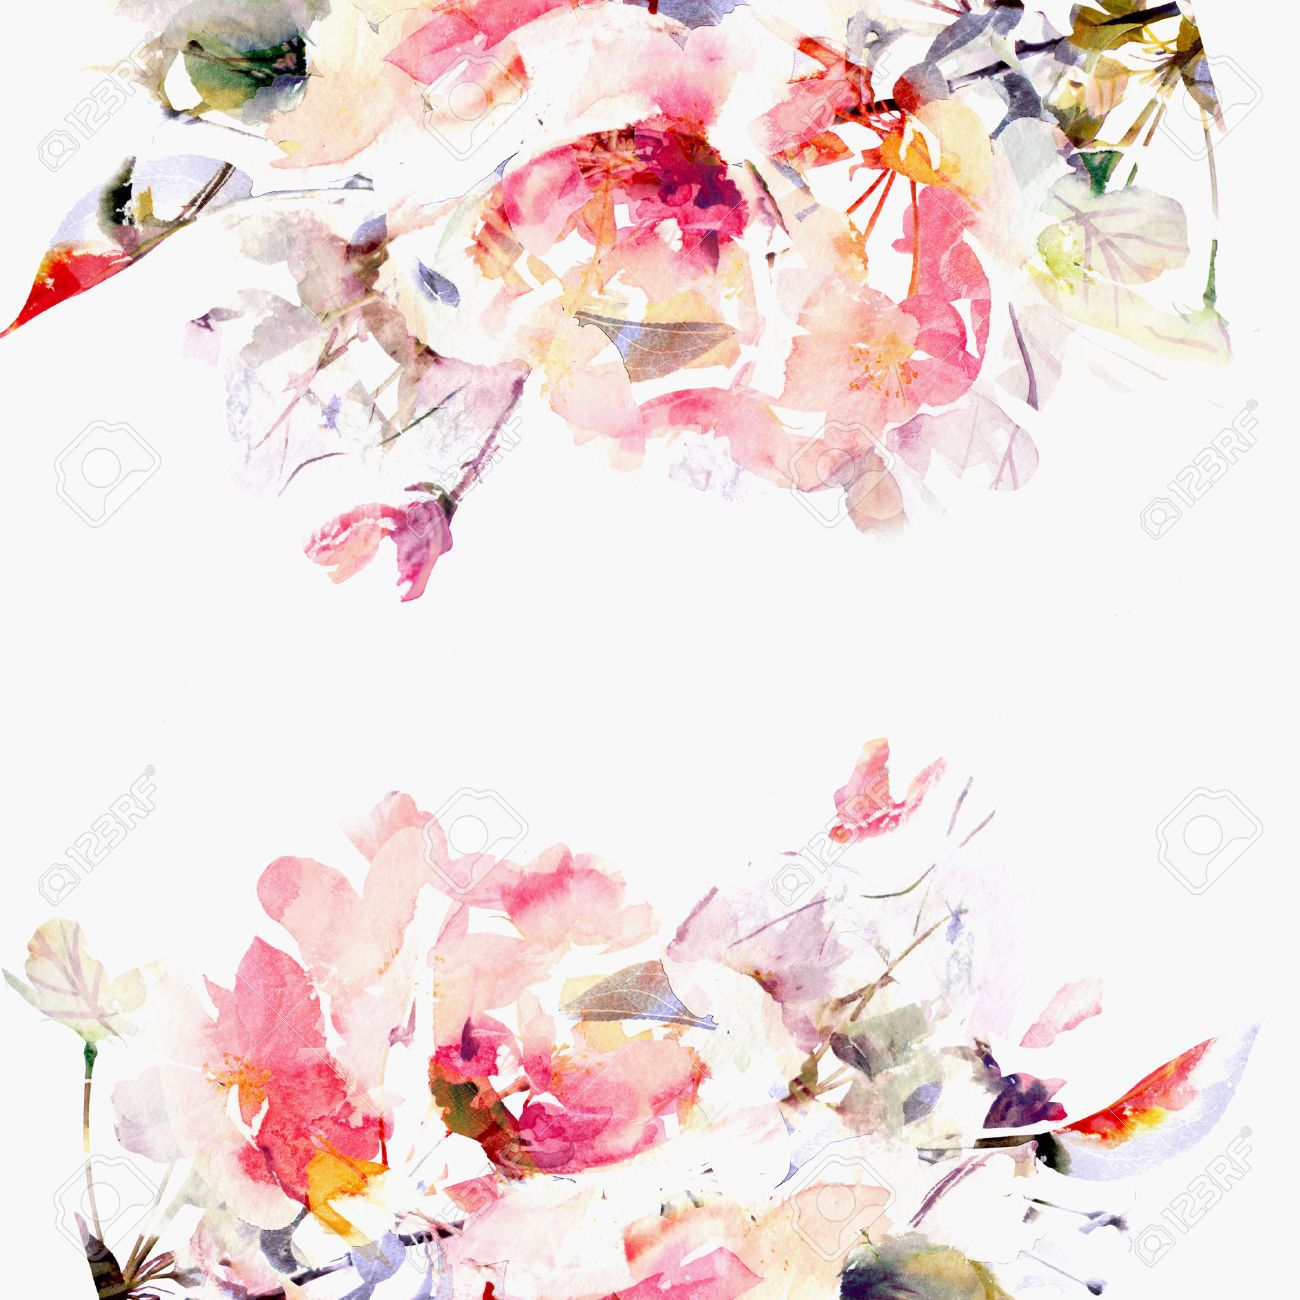 watercolour floral backgrounds Google Search Craft